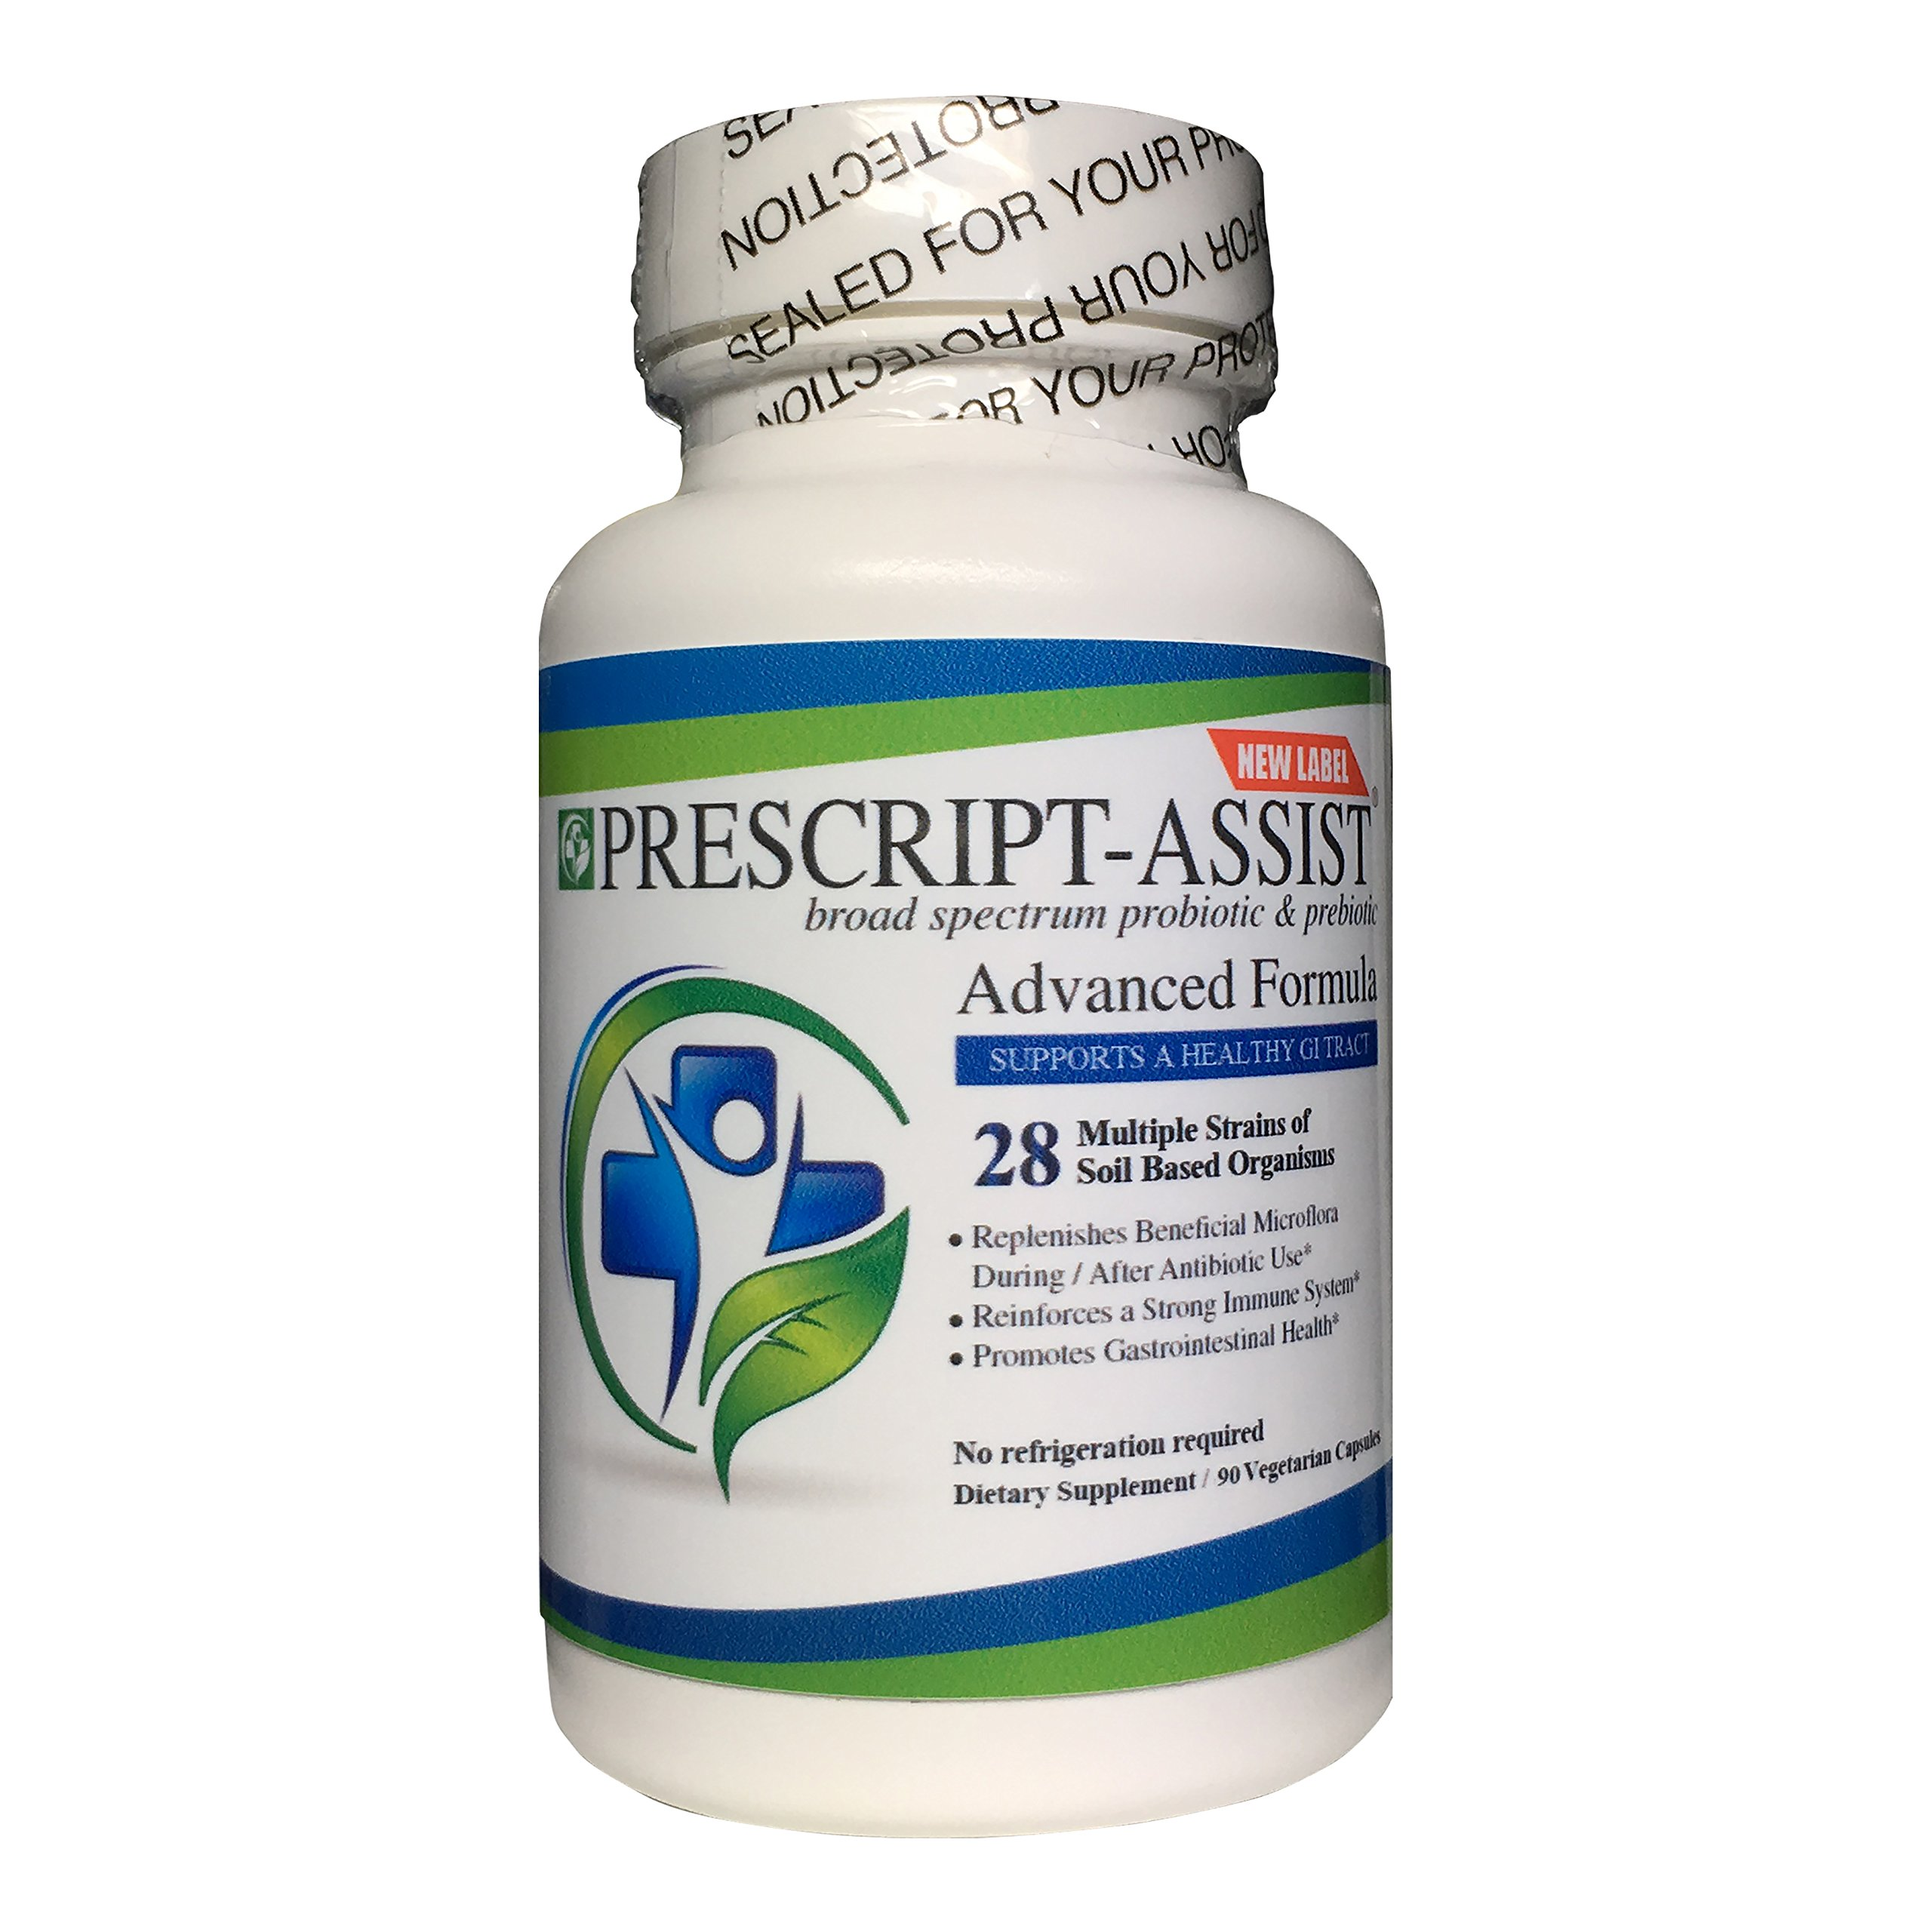 Prescript-assist Broad Spectrum Probiotic Prebiotic Complex